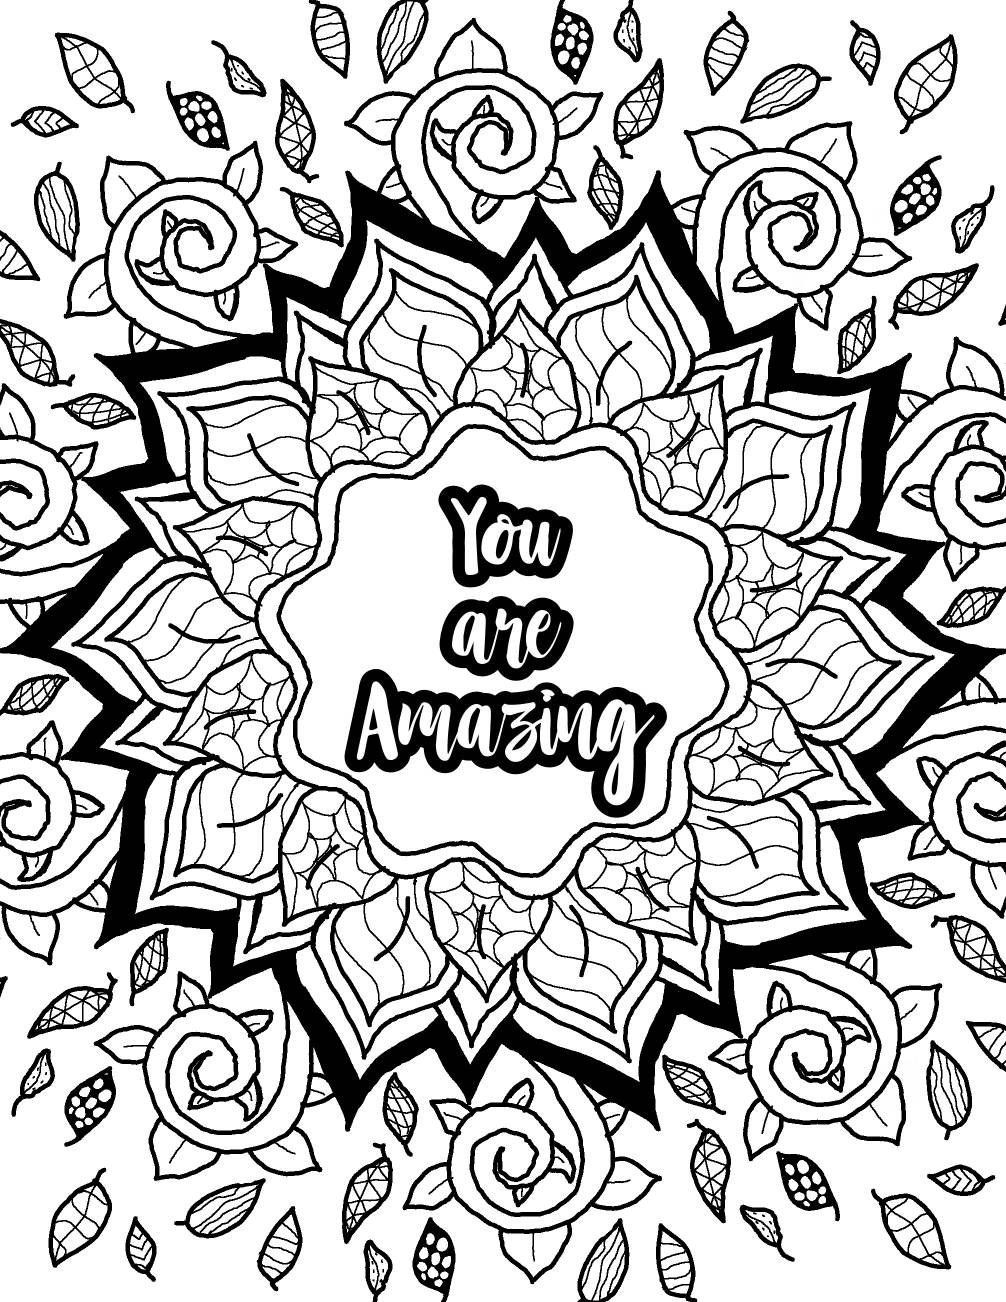 coloring pages inspirational inspirational coloring pages to download and print for free inspirational coloring pages